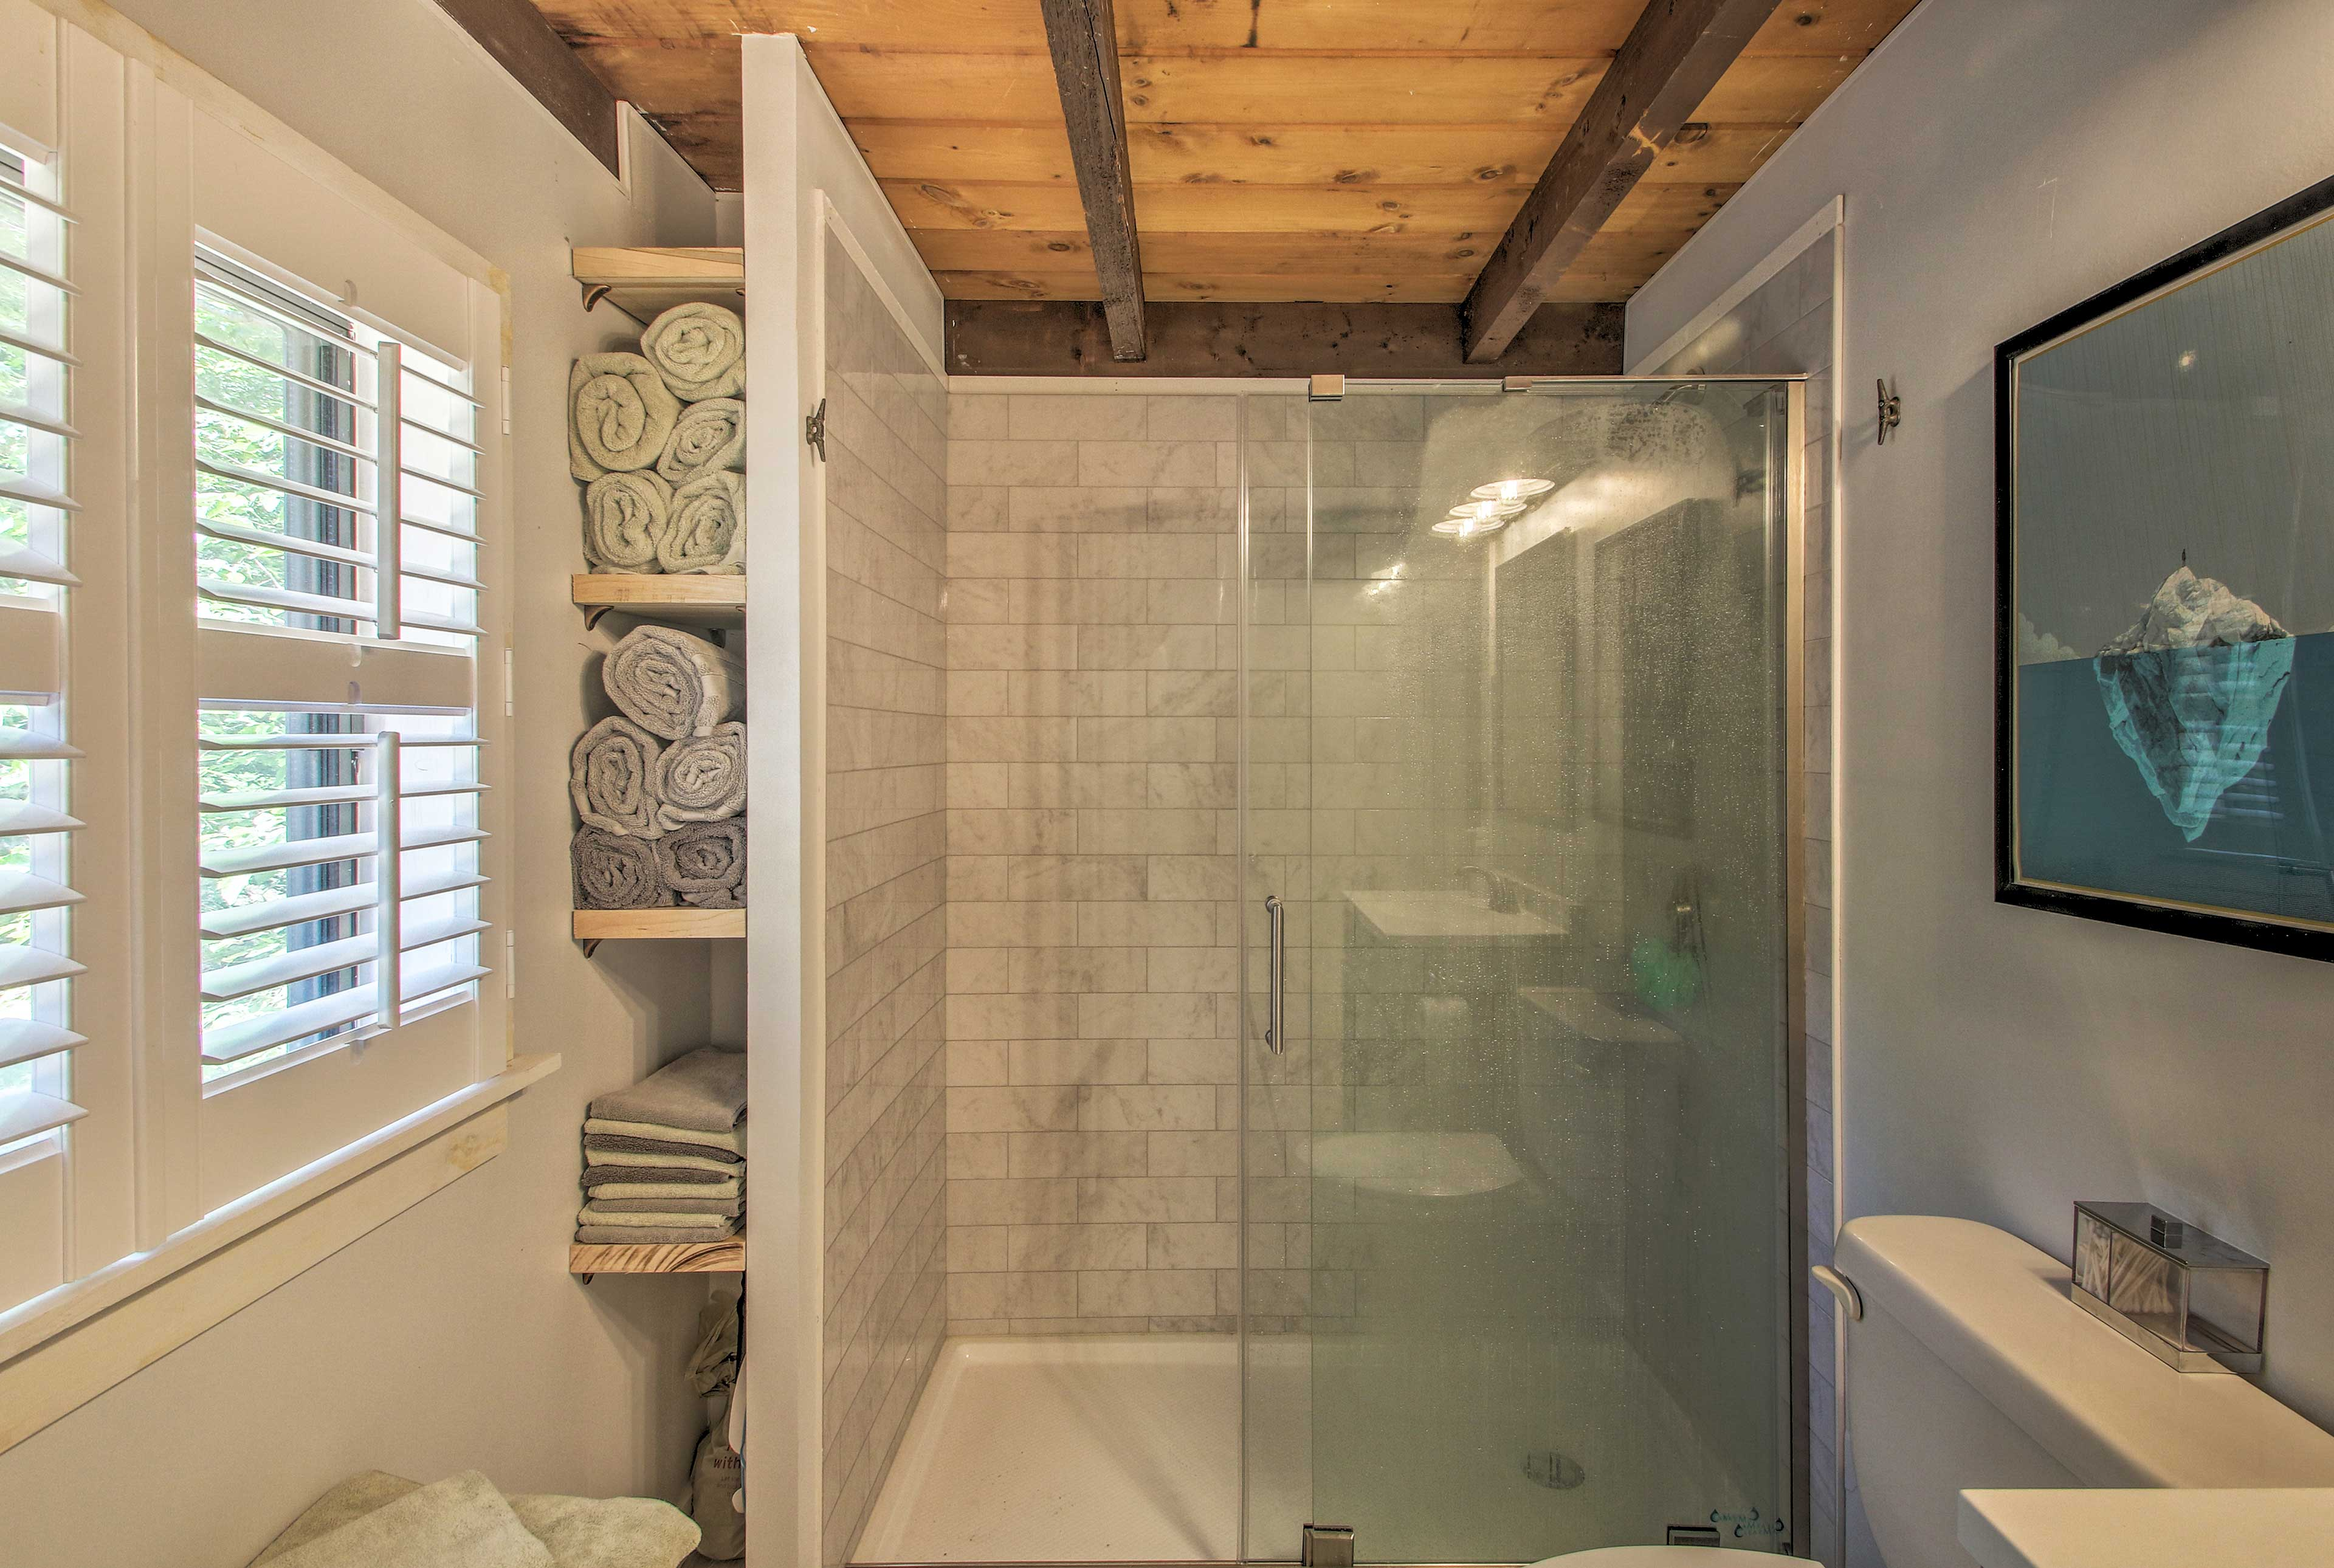 Rinse off after a day in the lake with the updated bathroom!